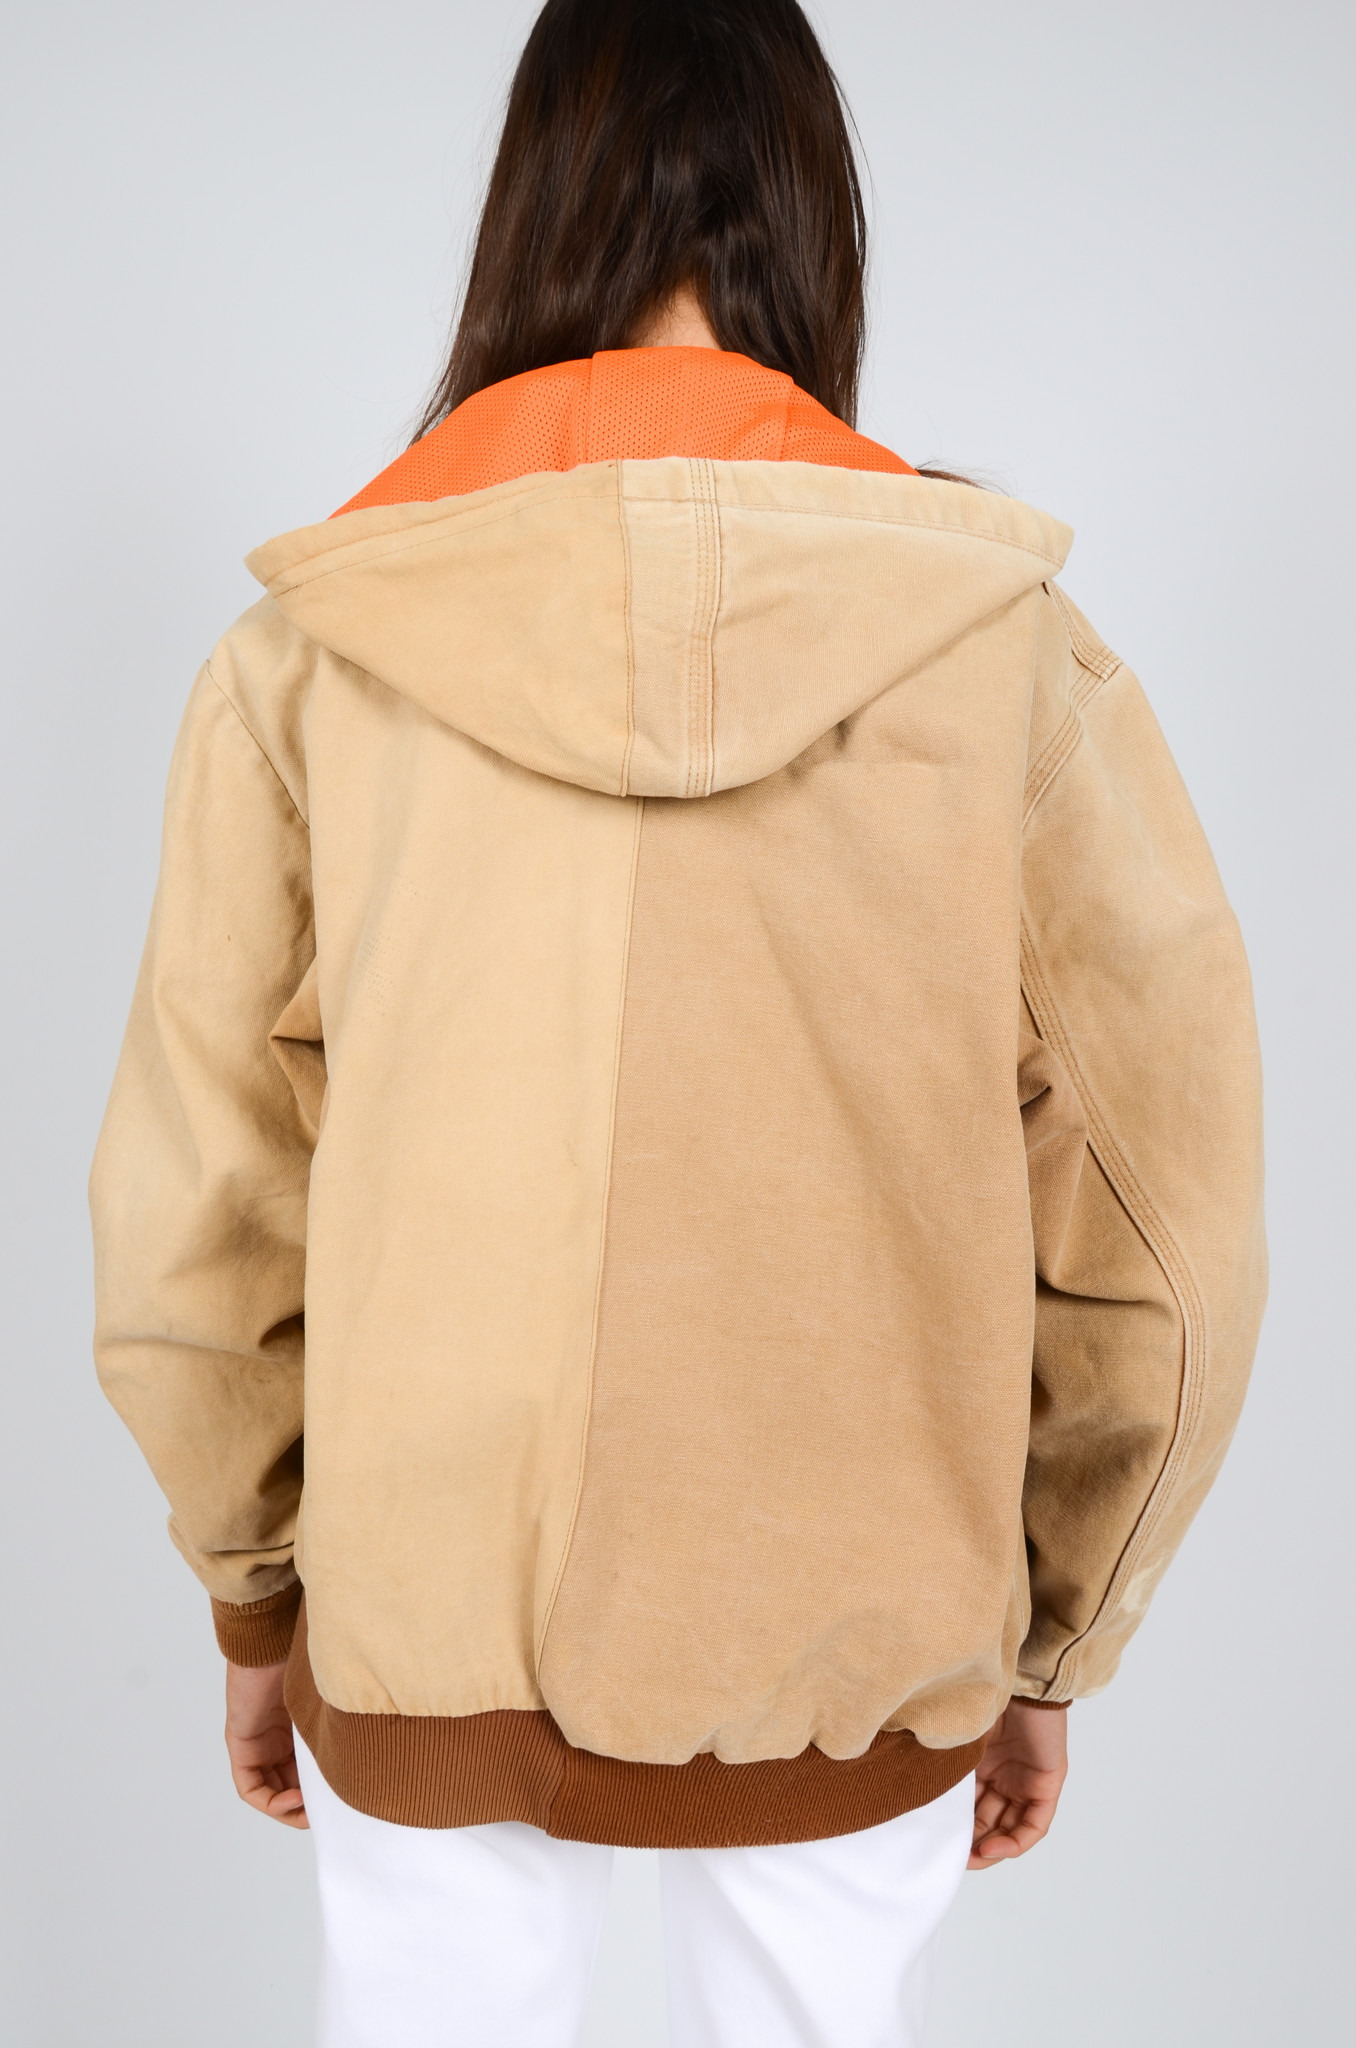 CARHARTT REVISITED JACKET-5